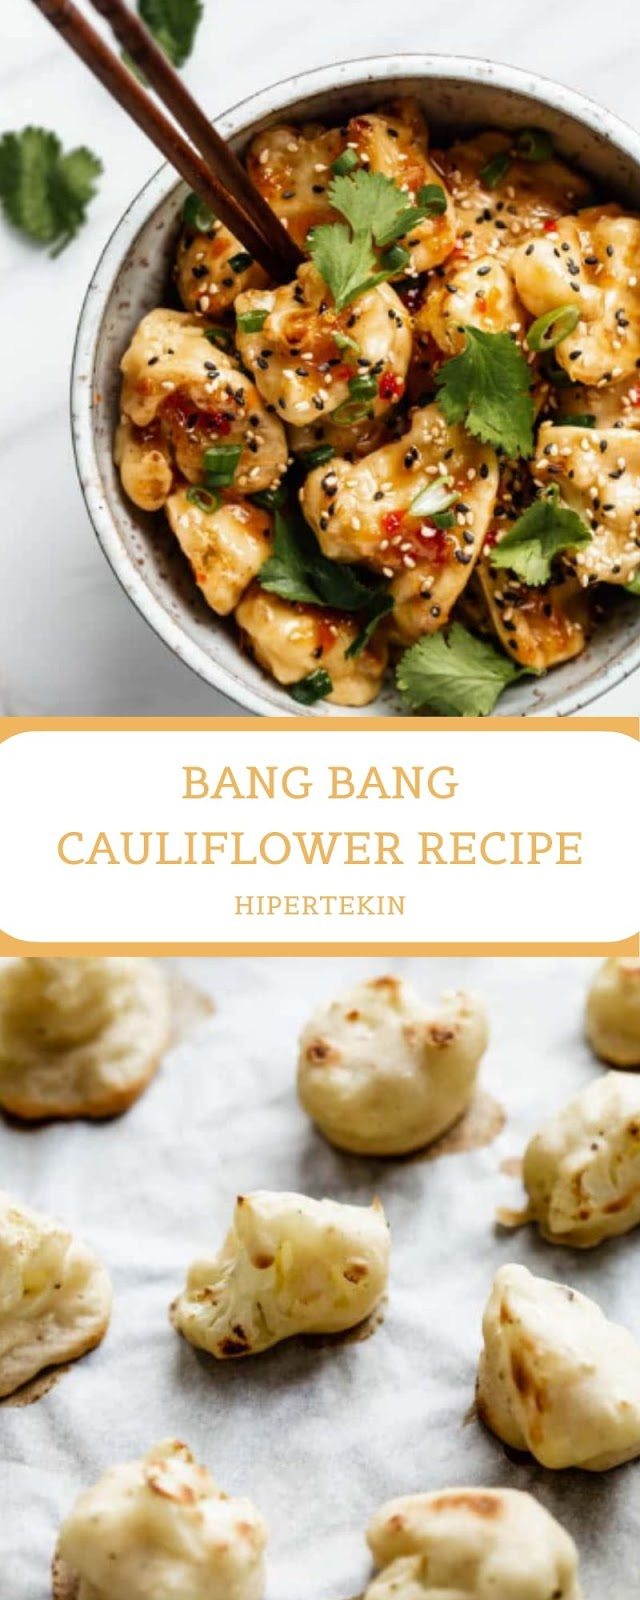 BANG BANG CAULIFLOWER RECIPE